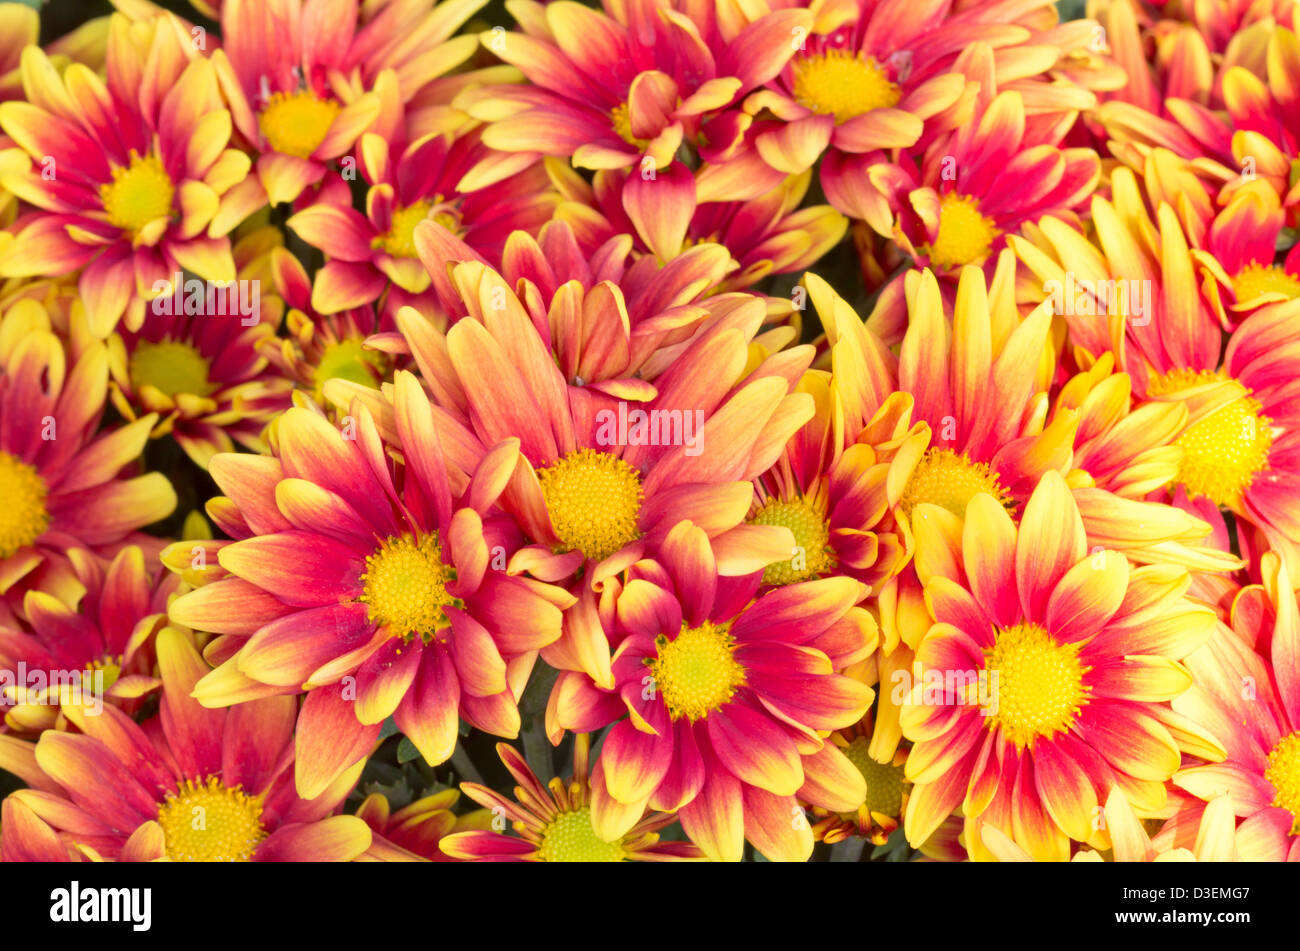 images of chrysanthemums.html